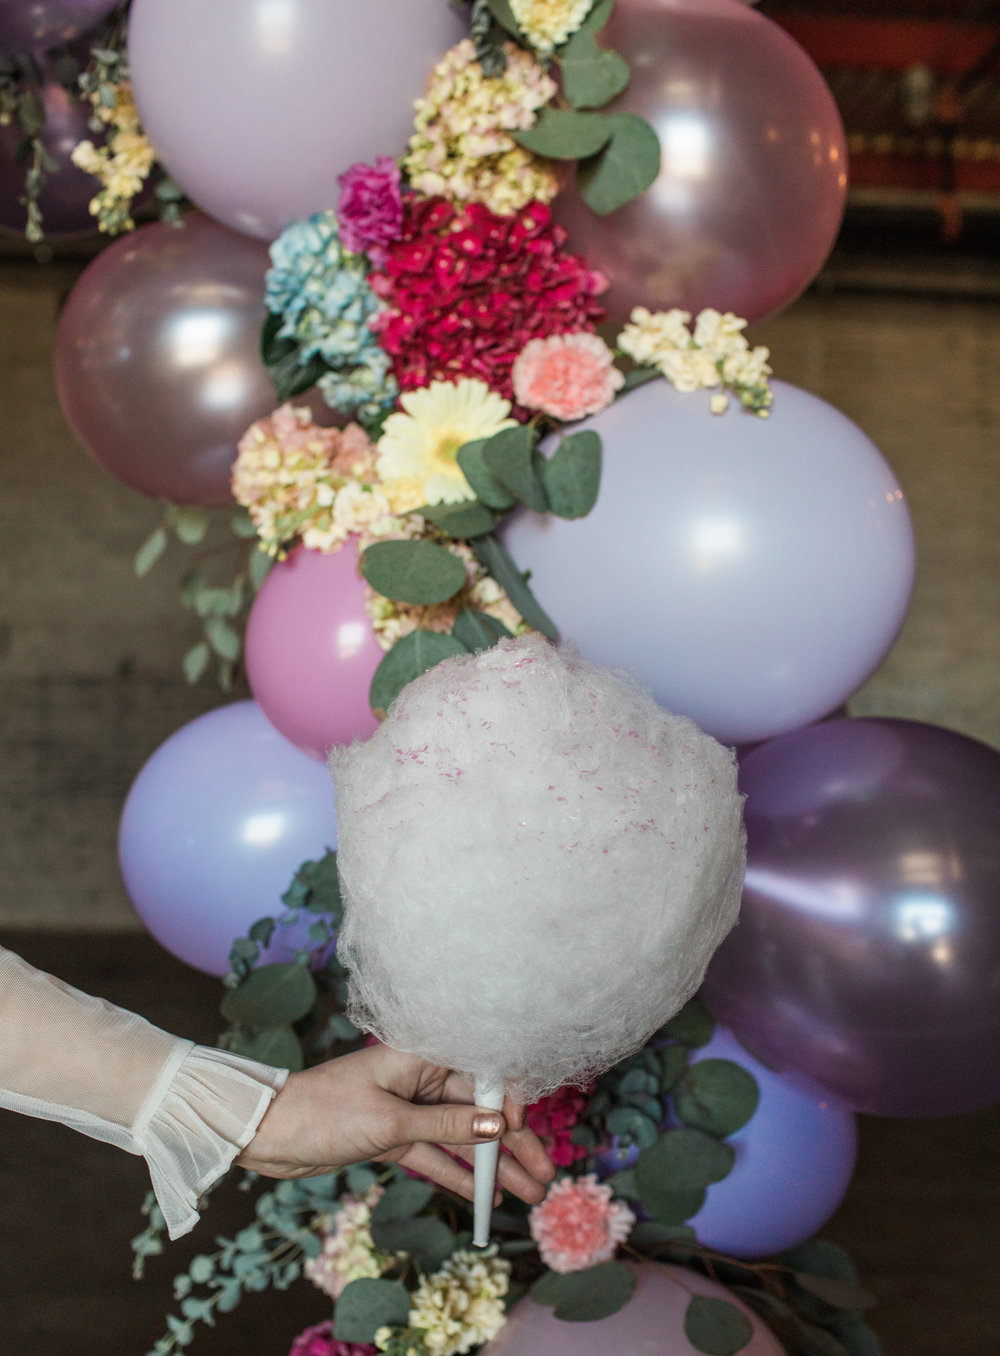 photo by  Casey Brodley,  model Erin Marie, floral design by  Floral Sense , organic cotton candy by  Spun Sugar Detroit